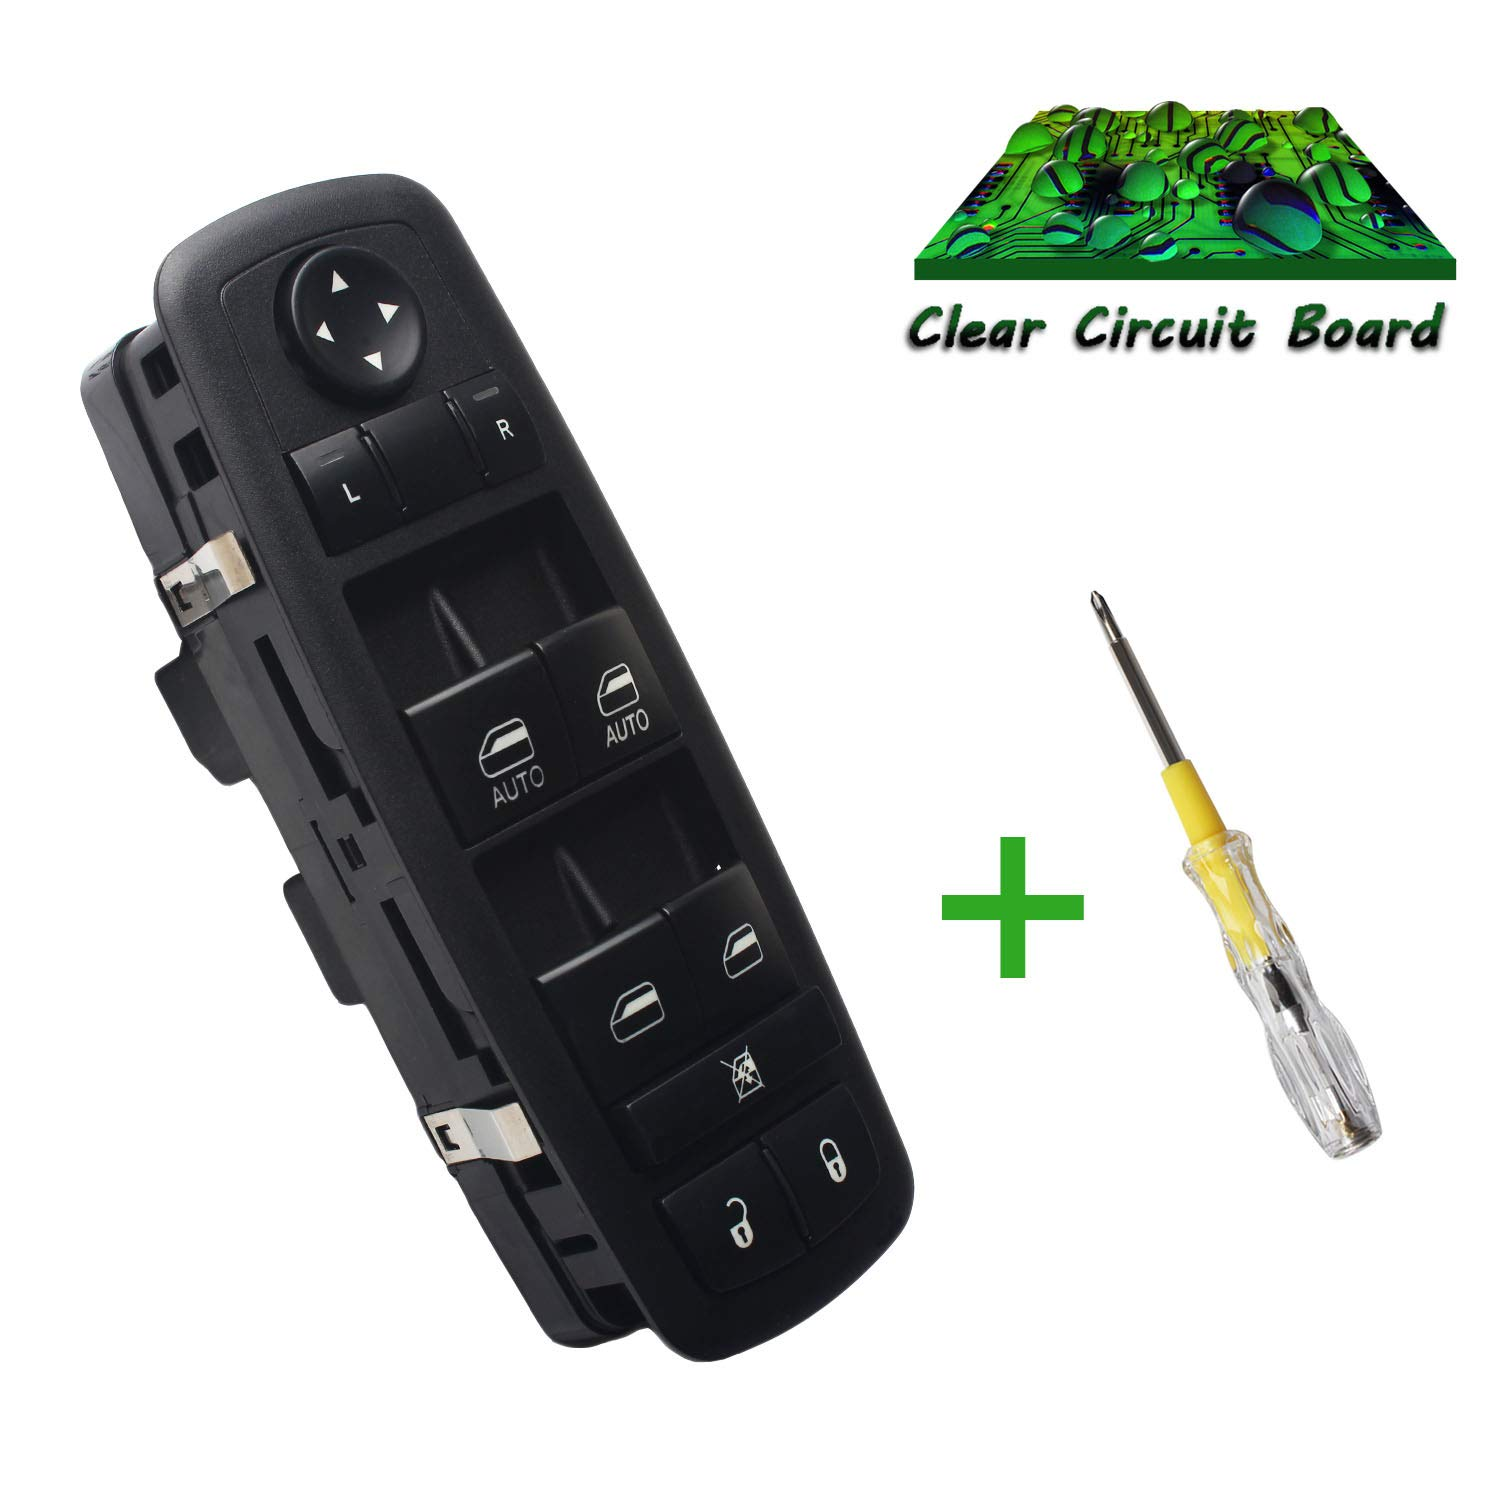 amazon com beneges master power window switch compatible with 2012beneges master power window switch compatible with 2012 2015 chrysler town \u0026 country, 2012 2017 dodge grand caravan, 2013 2015 dodge ram 1500 2500 3500 4500